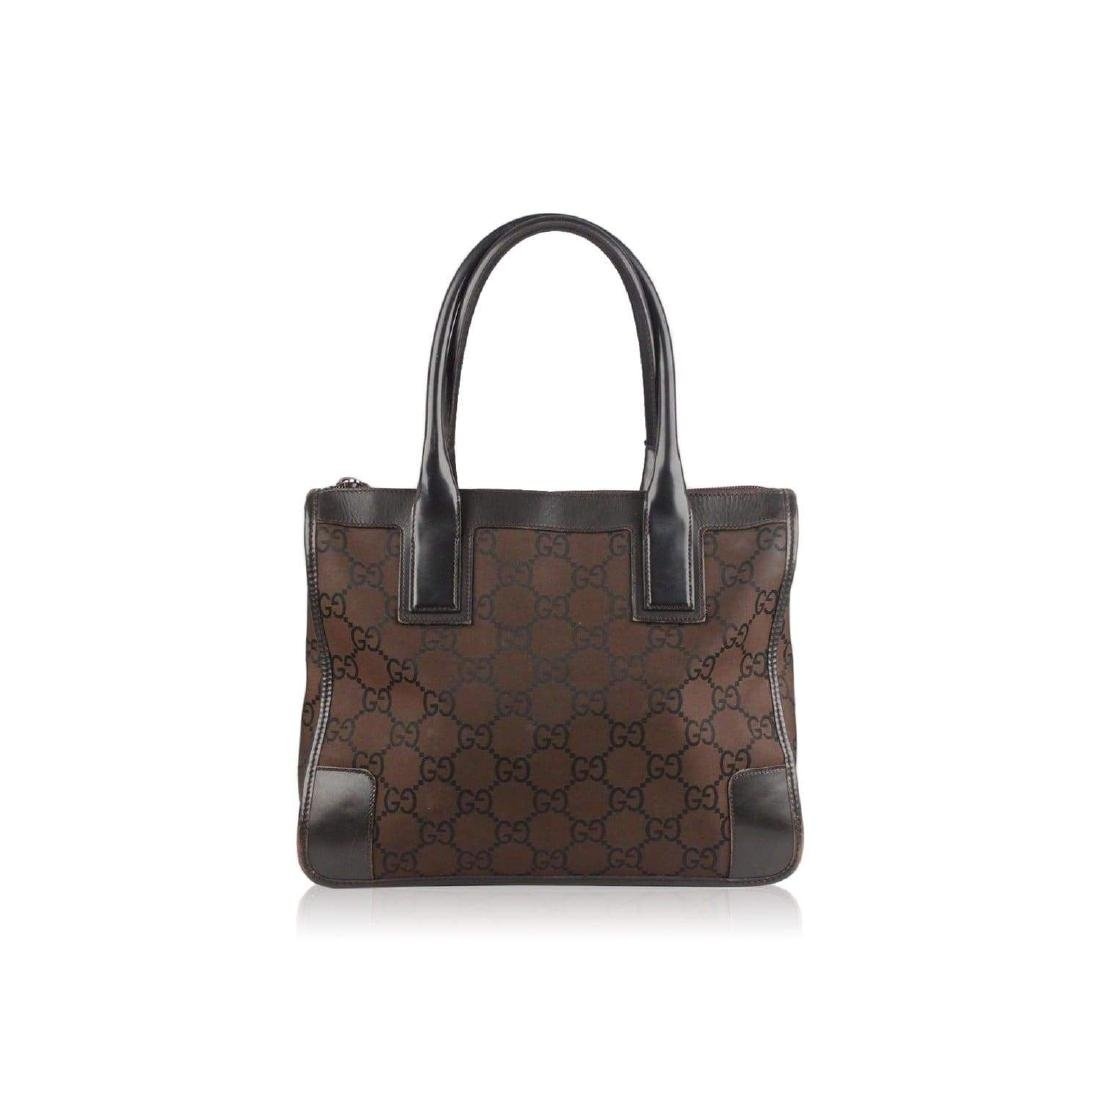 Gucci Monogram Canvas Satchel Bag